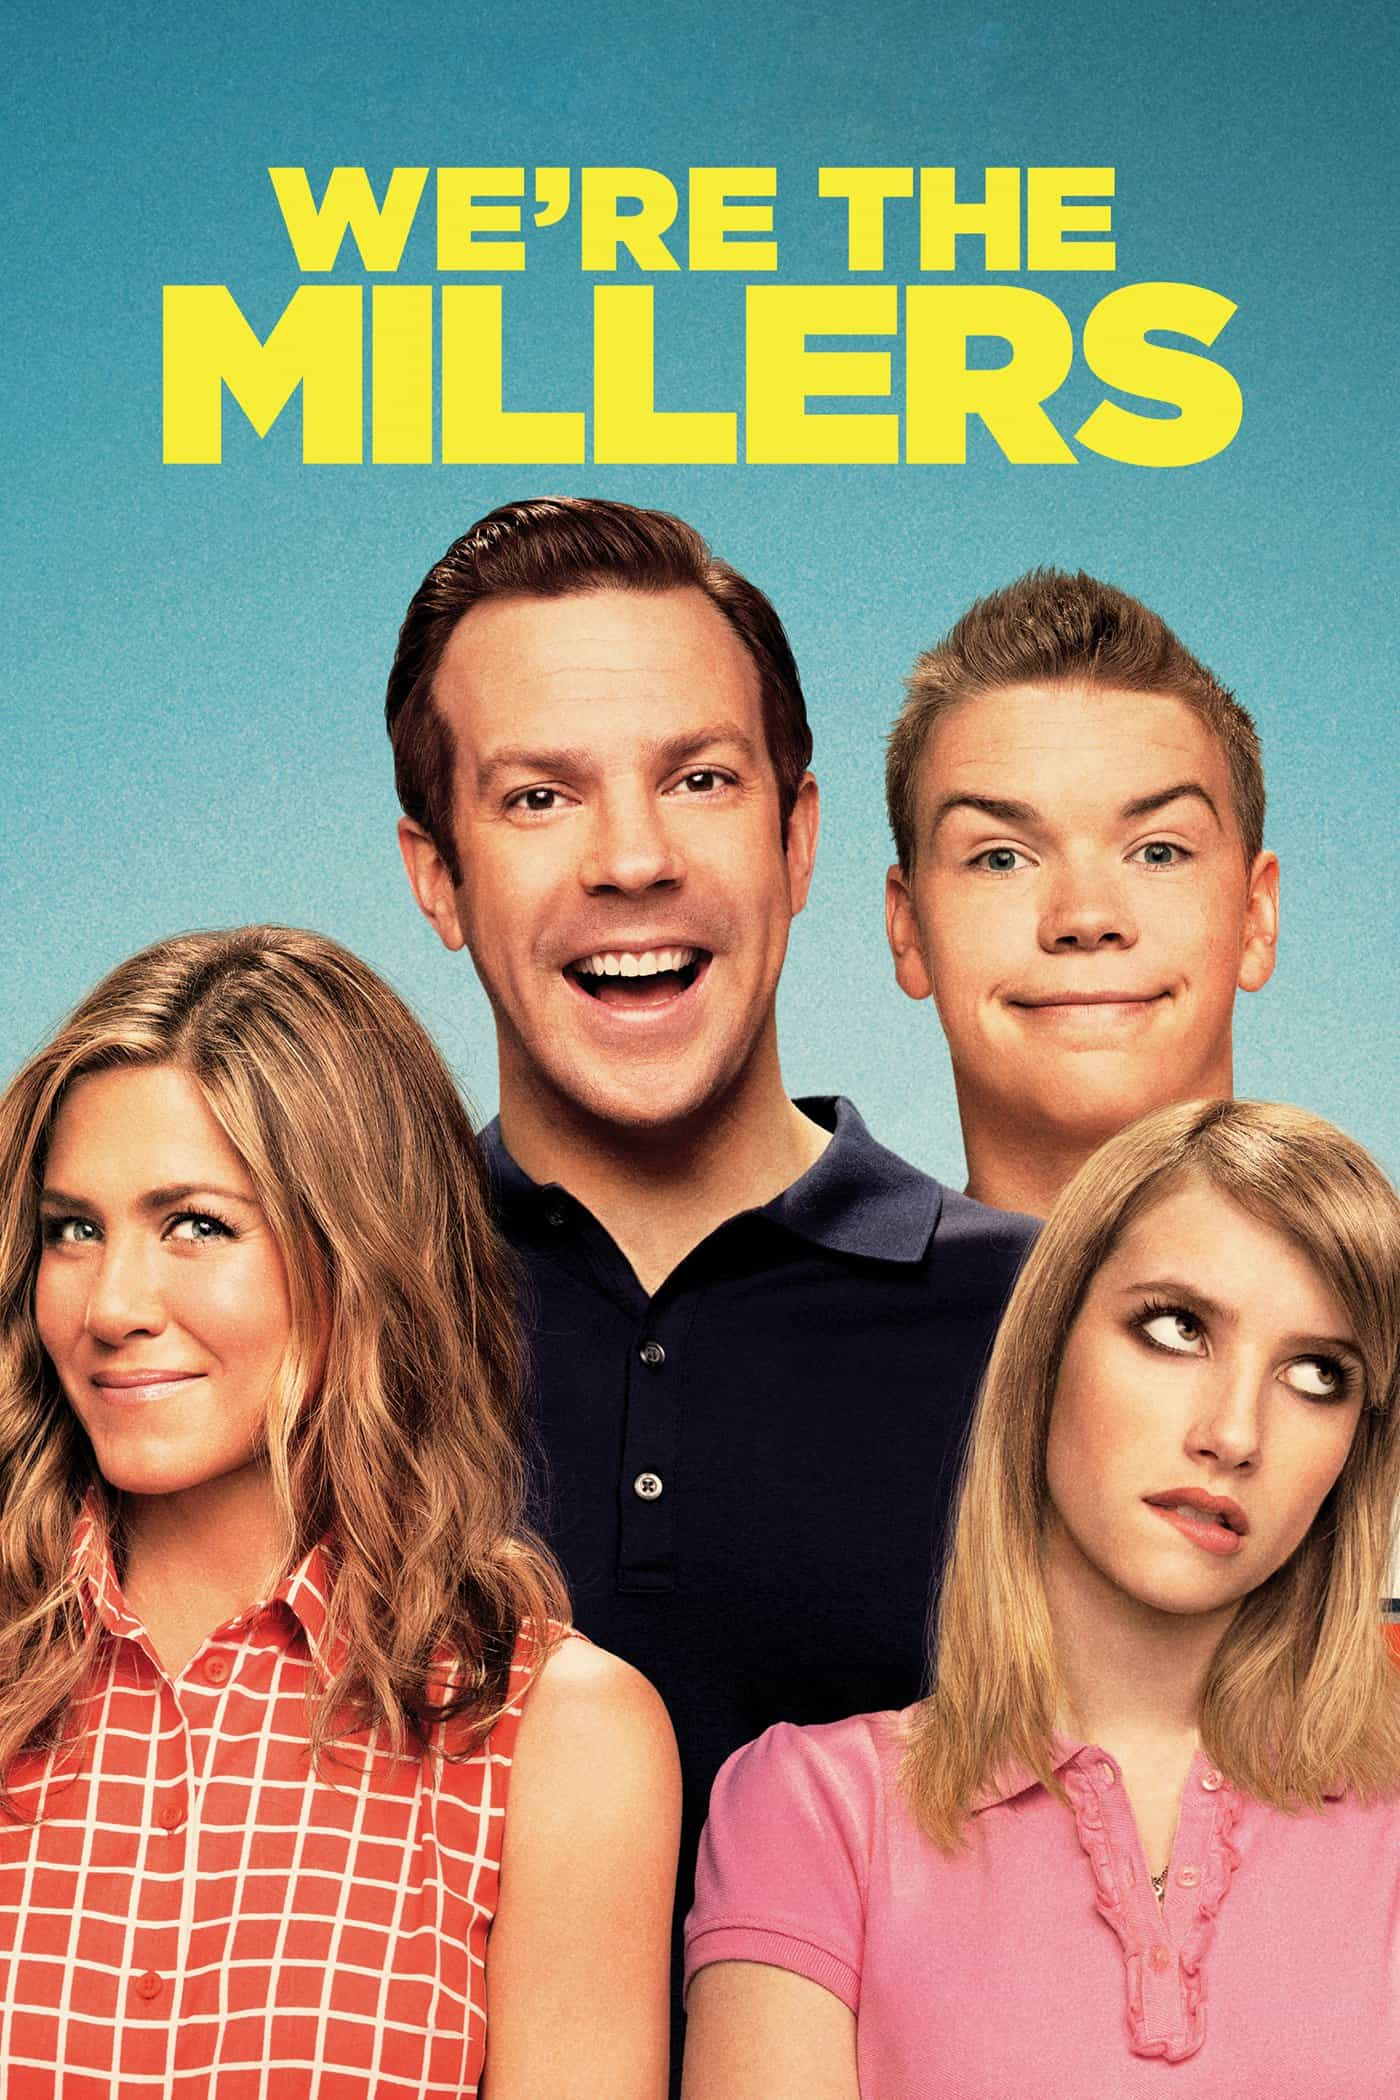 We're the Millers, 2013